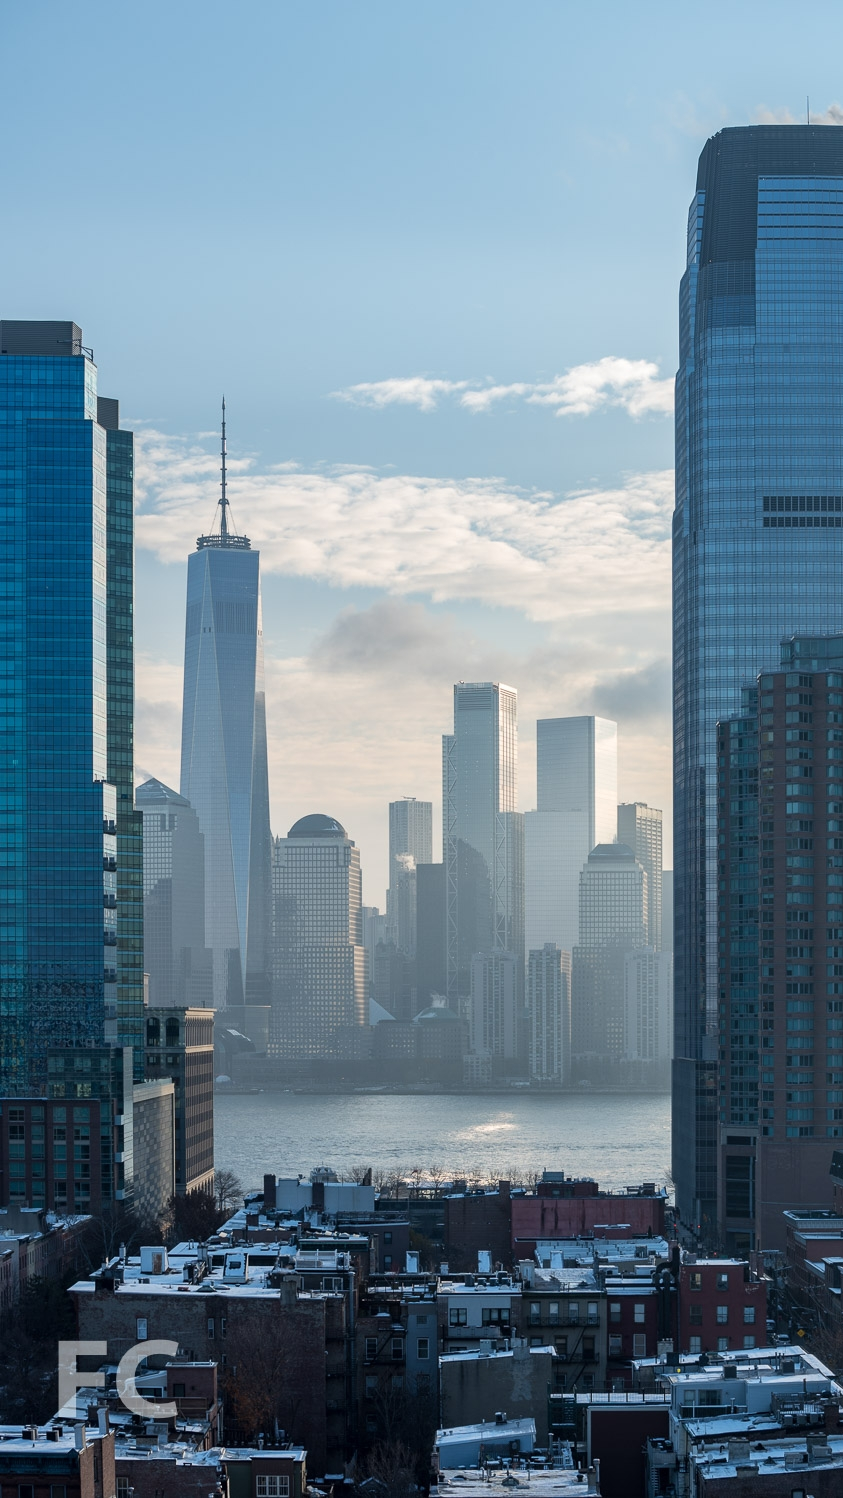 View of Lower Manhattan from the rooftop terrace.